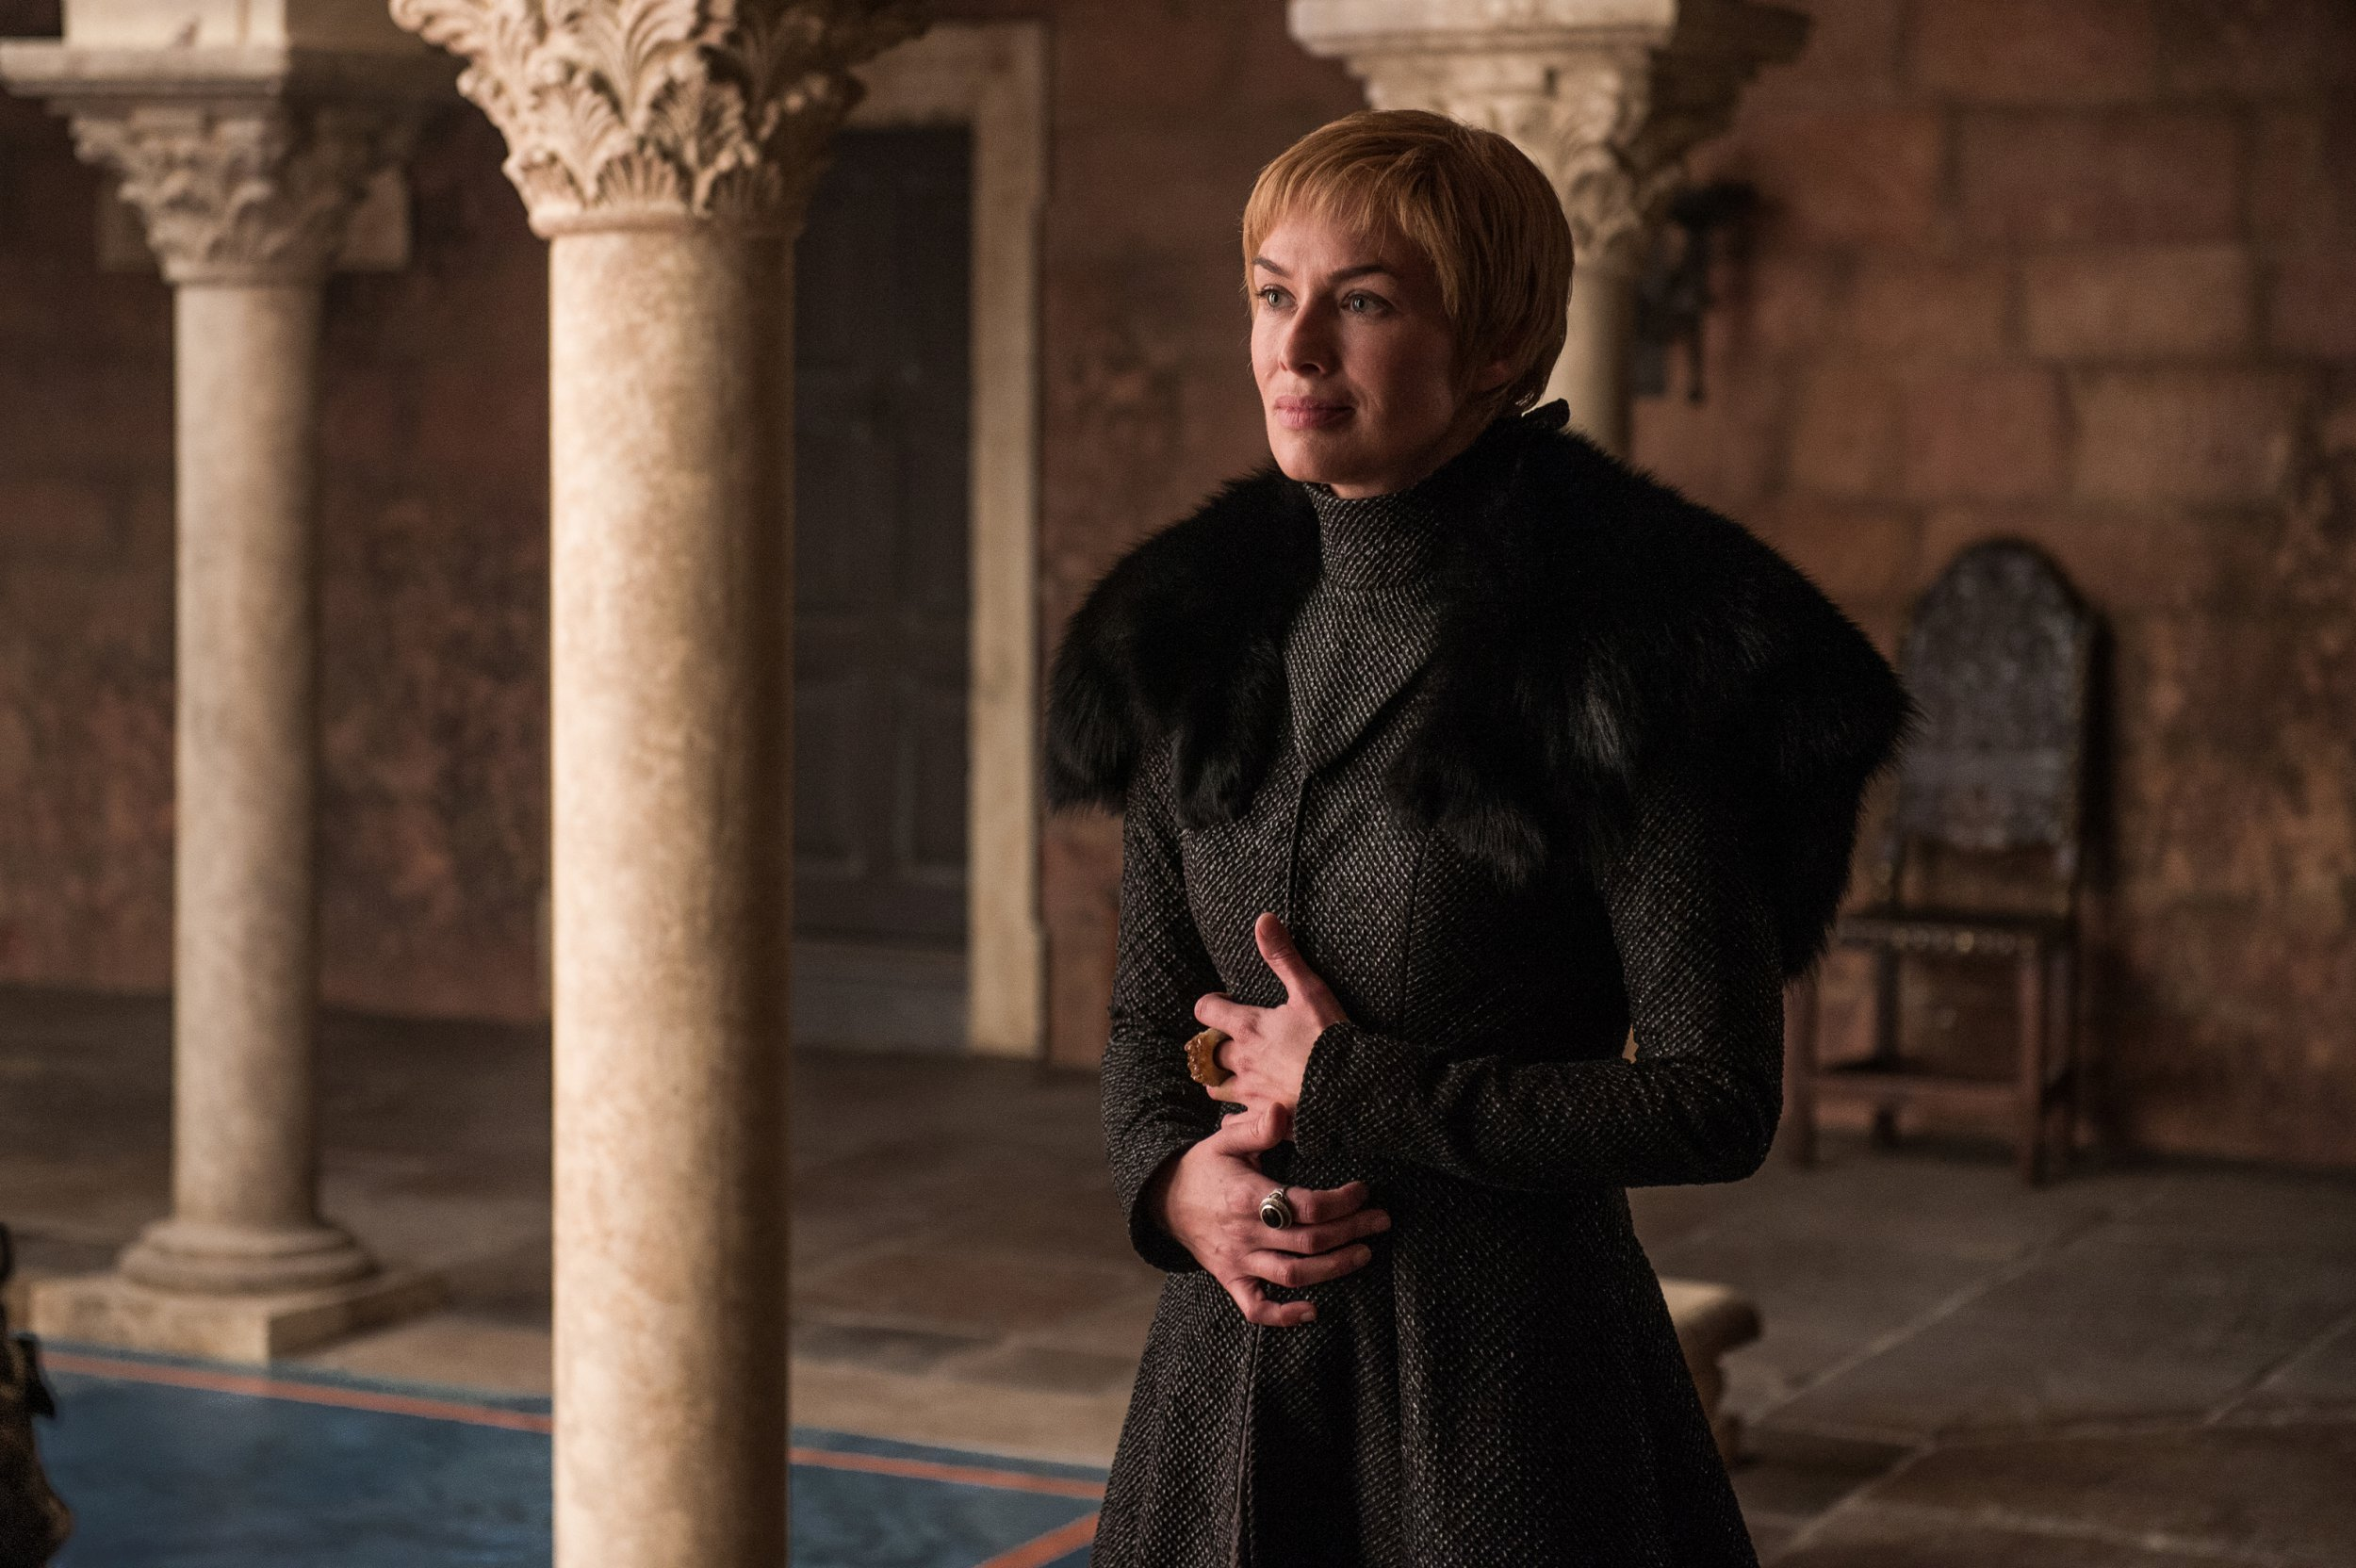 Game Of Thrones star Lena Headey says cast are 'ready' to move on as final season approaches